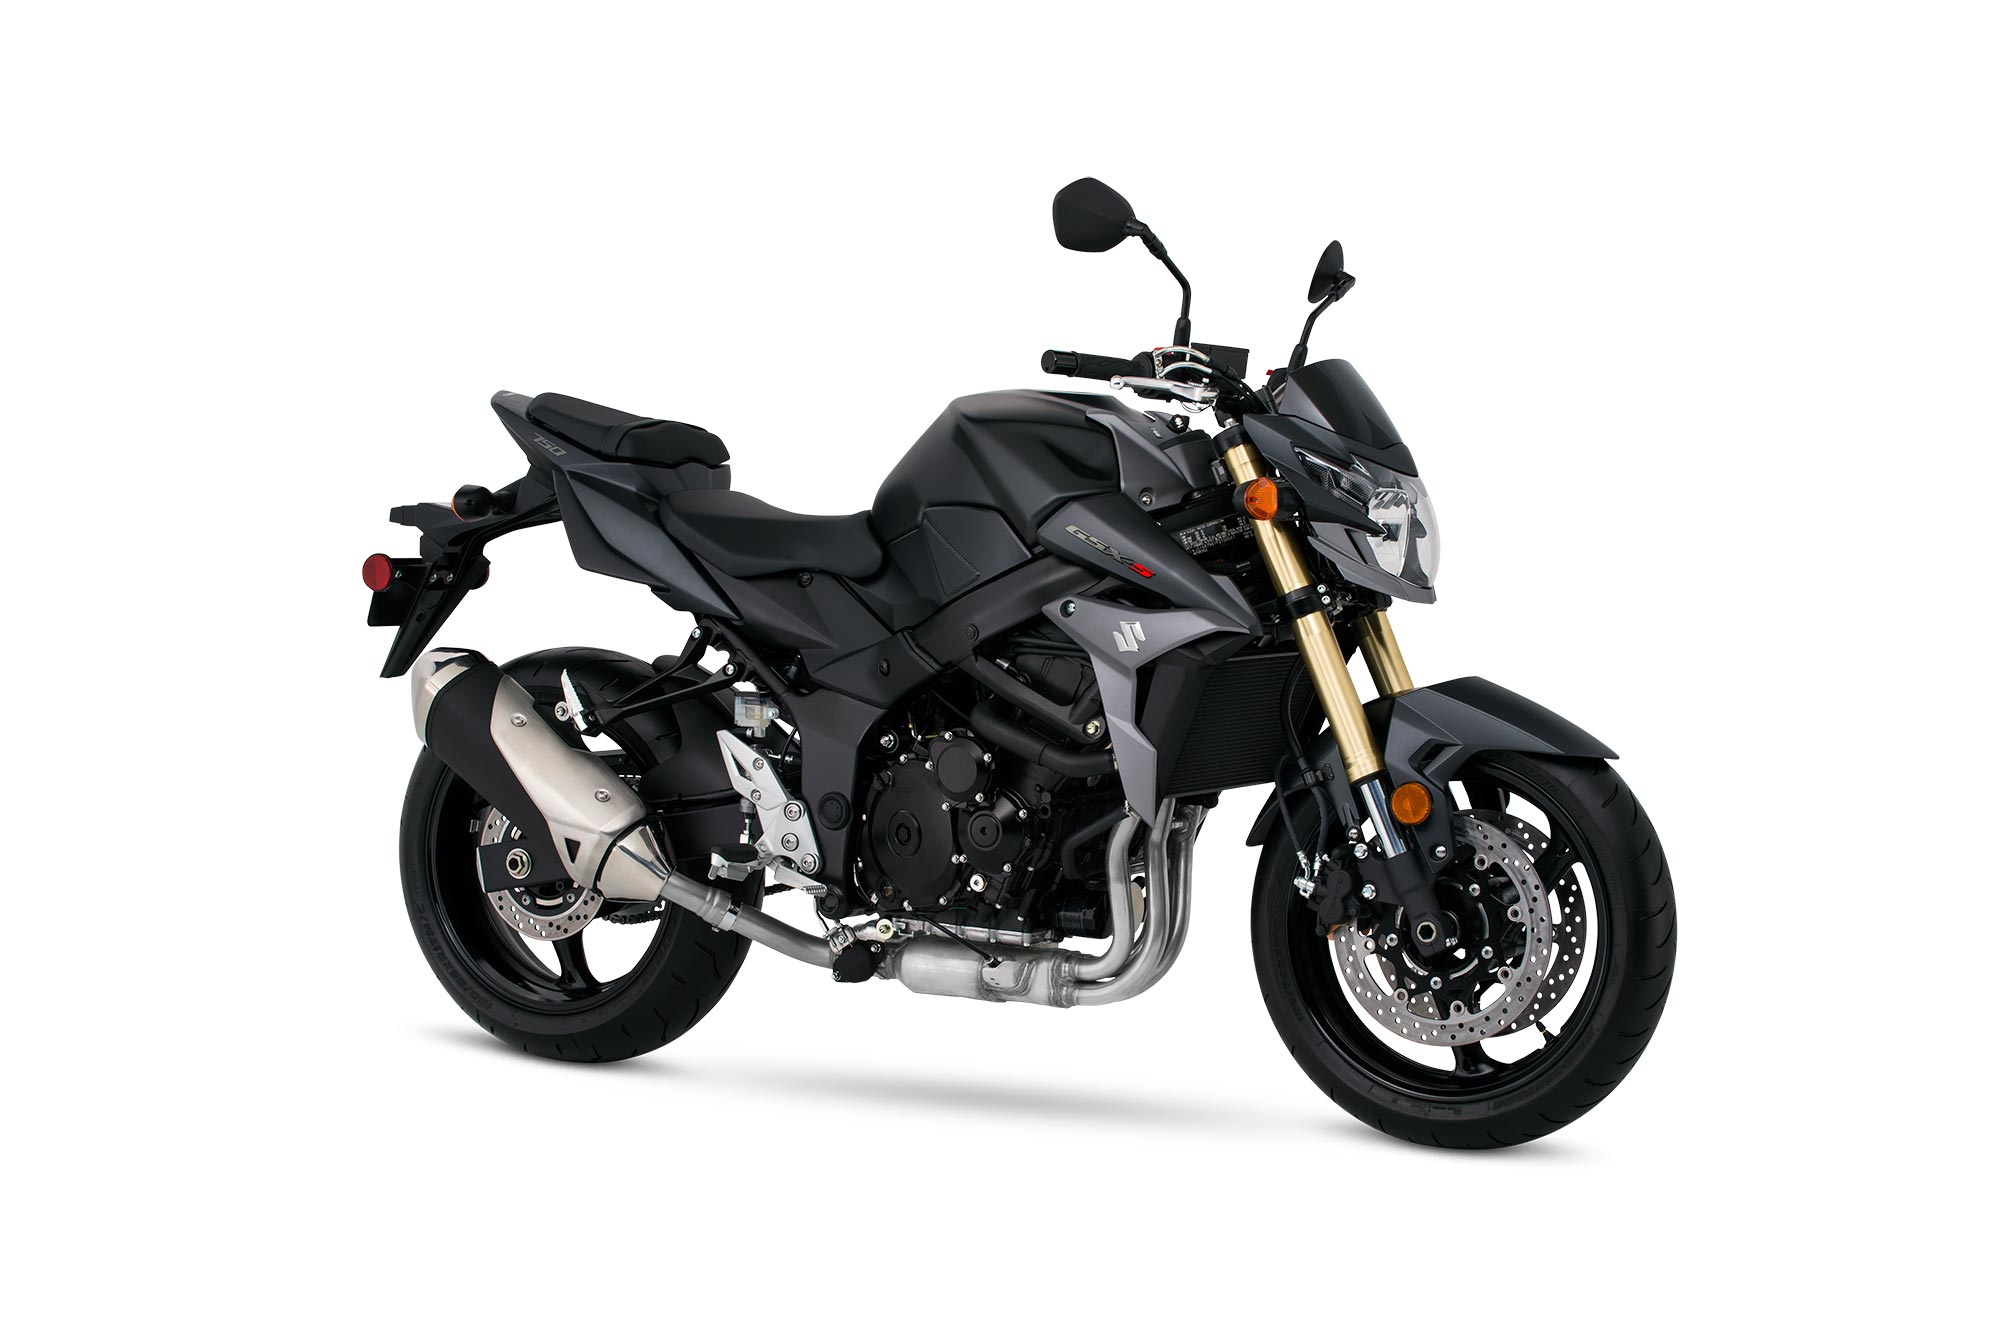 2015 suzuki gsx s750 budget middleweight streetfighter. Black Bedroom Furniture Sets. Home Design Ideas